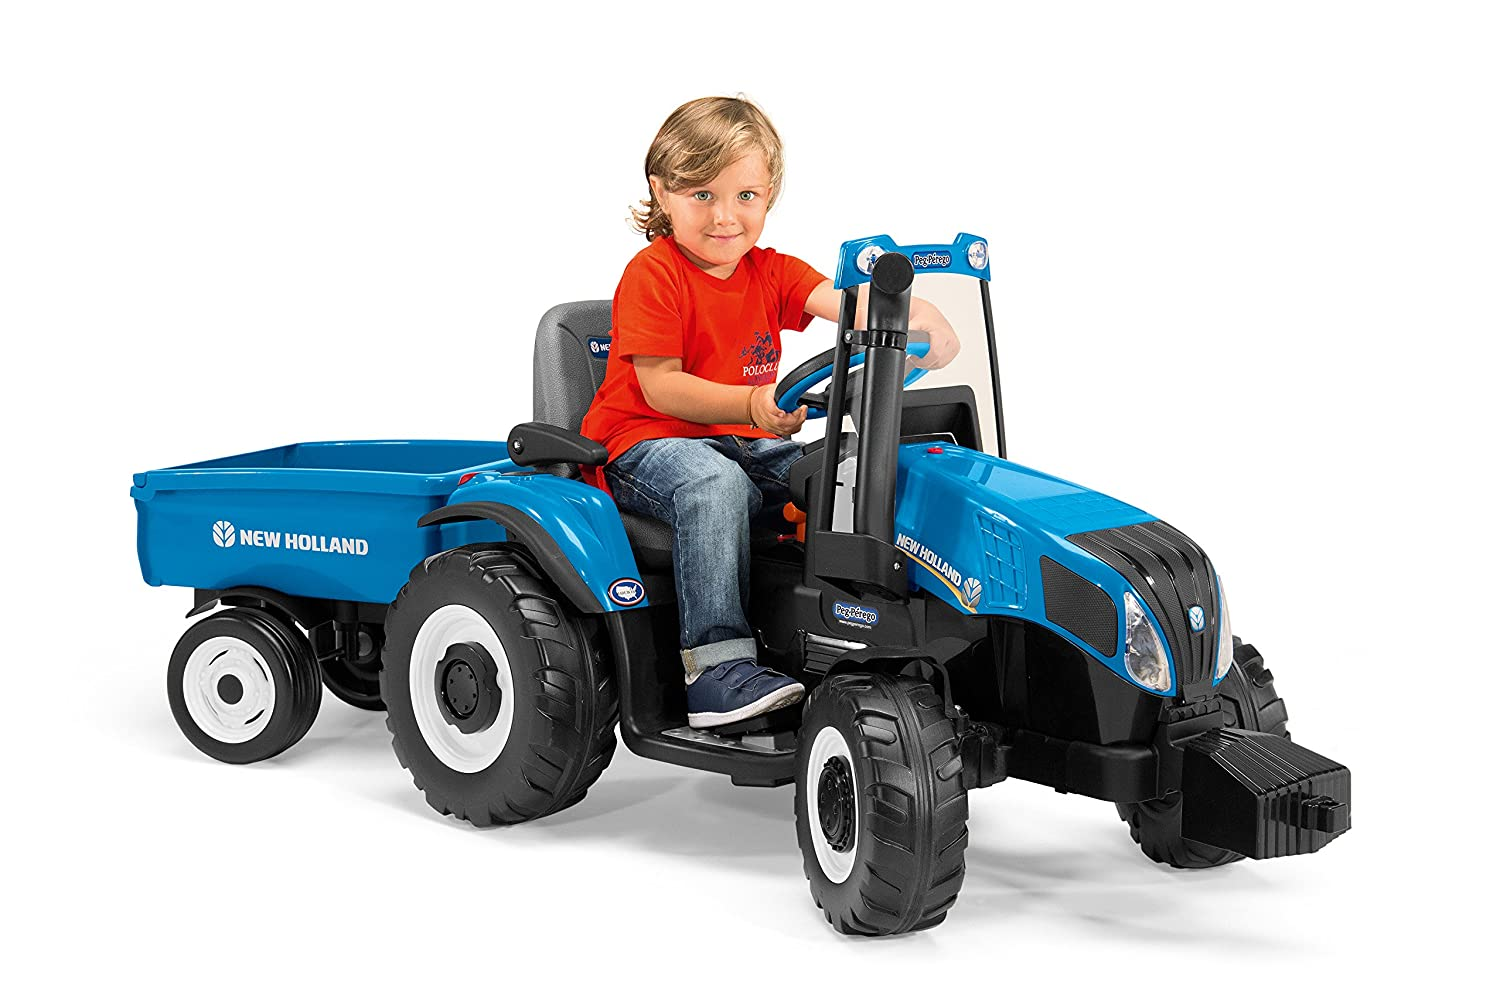 Peg Perego New Holland 12v Tractor Motorized Ride On Kids